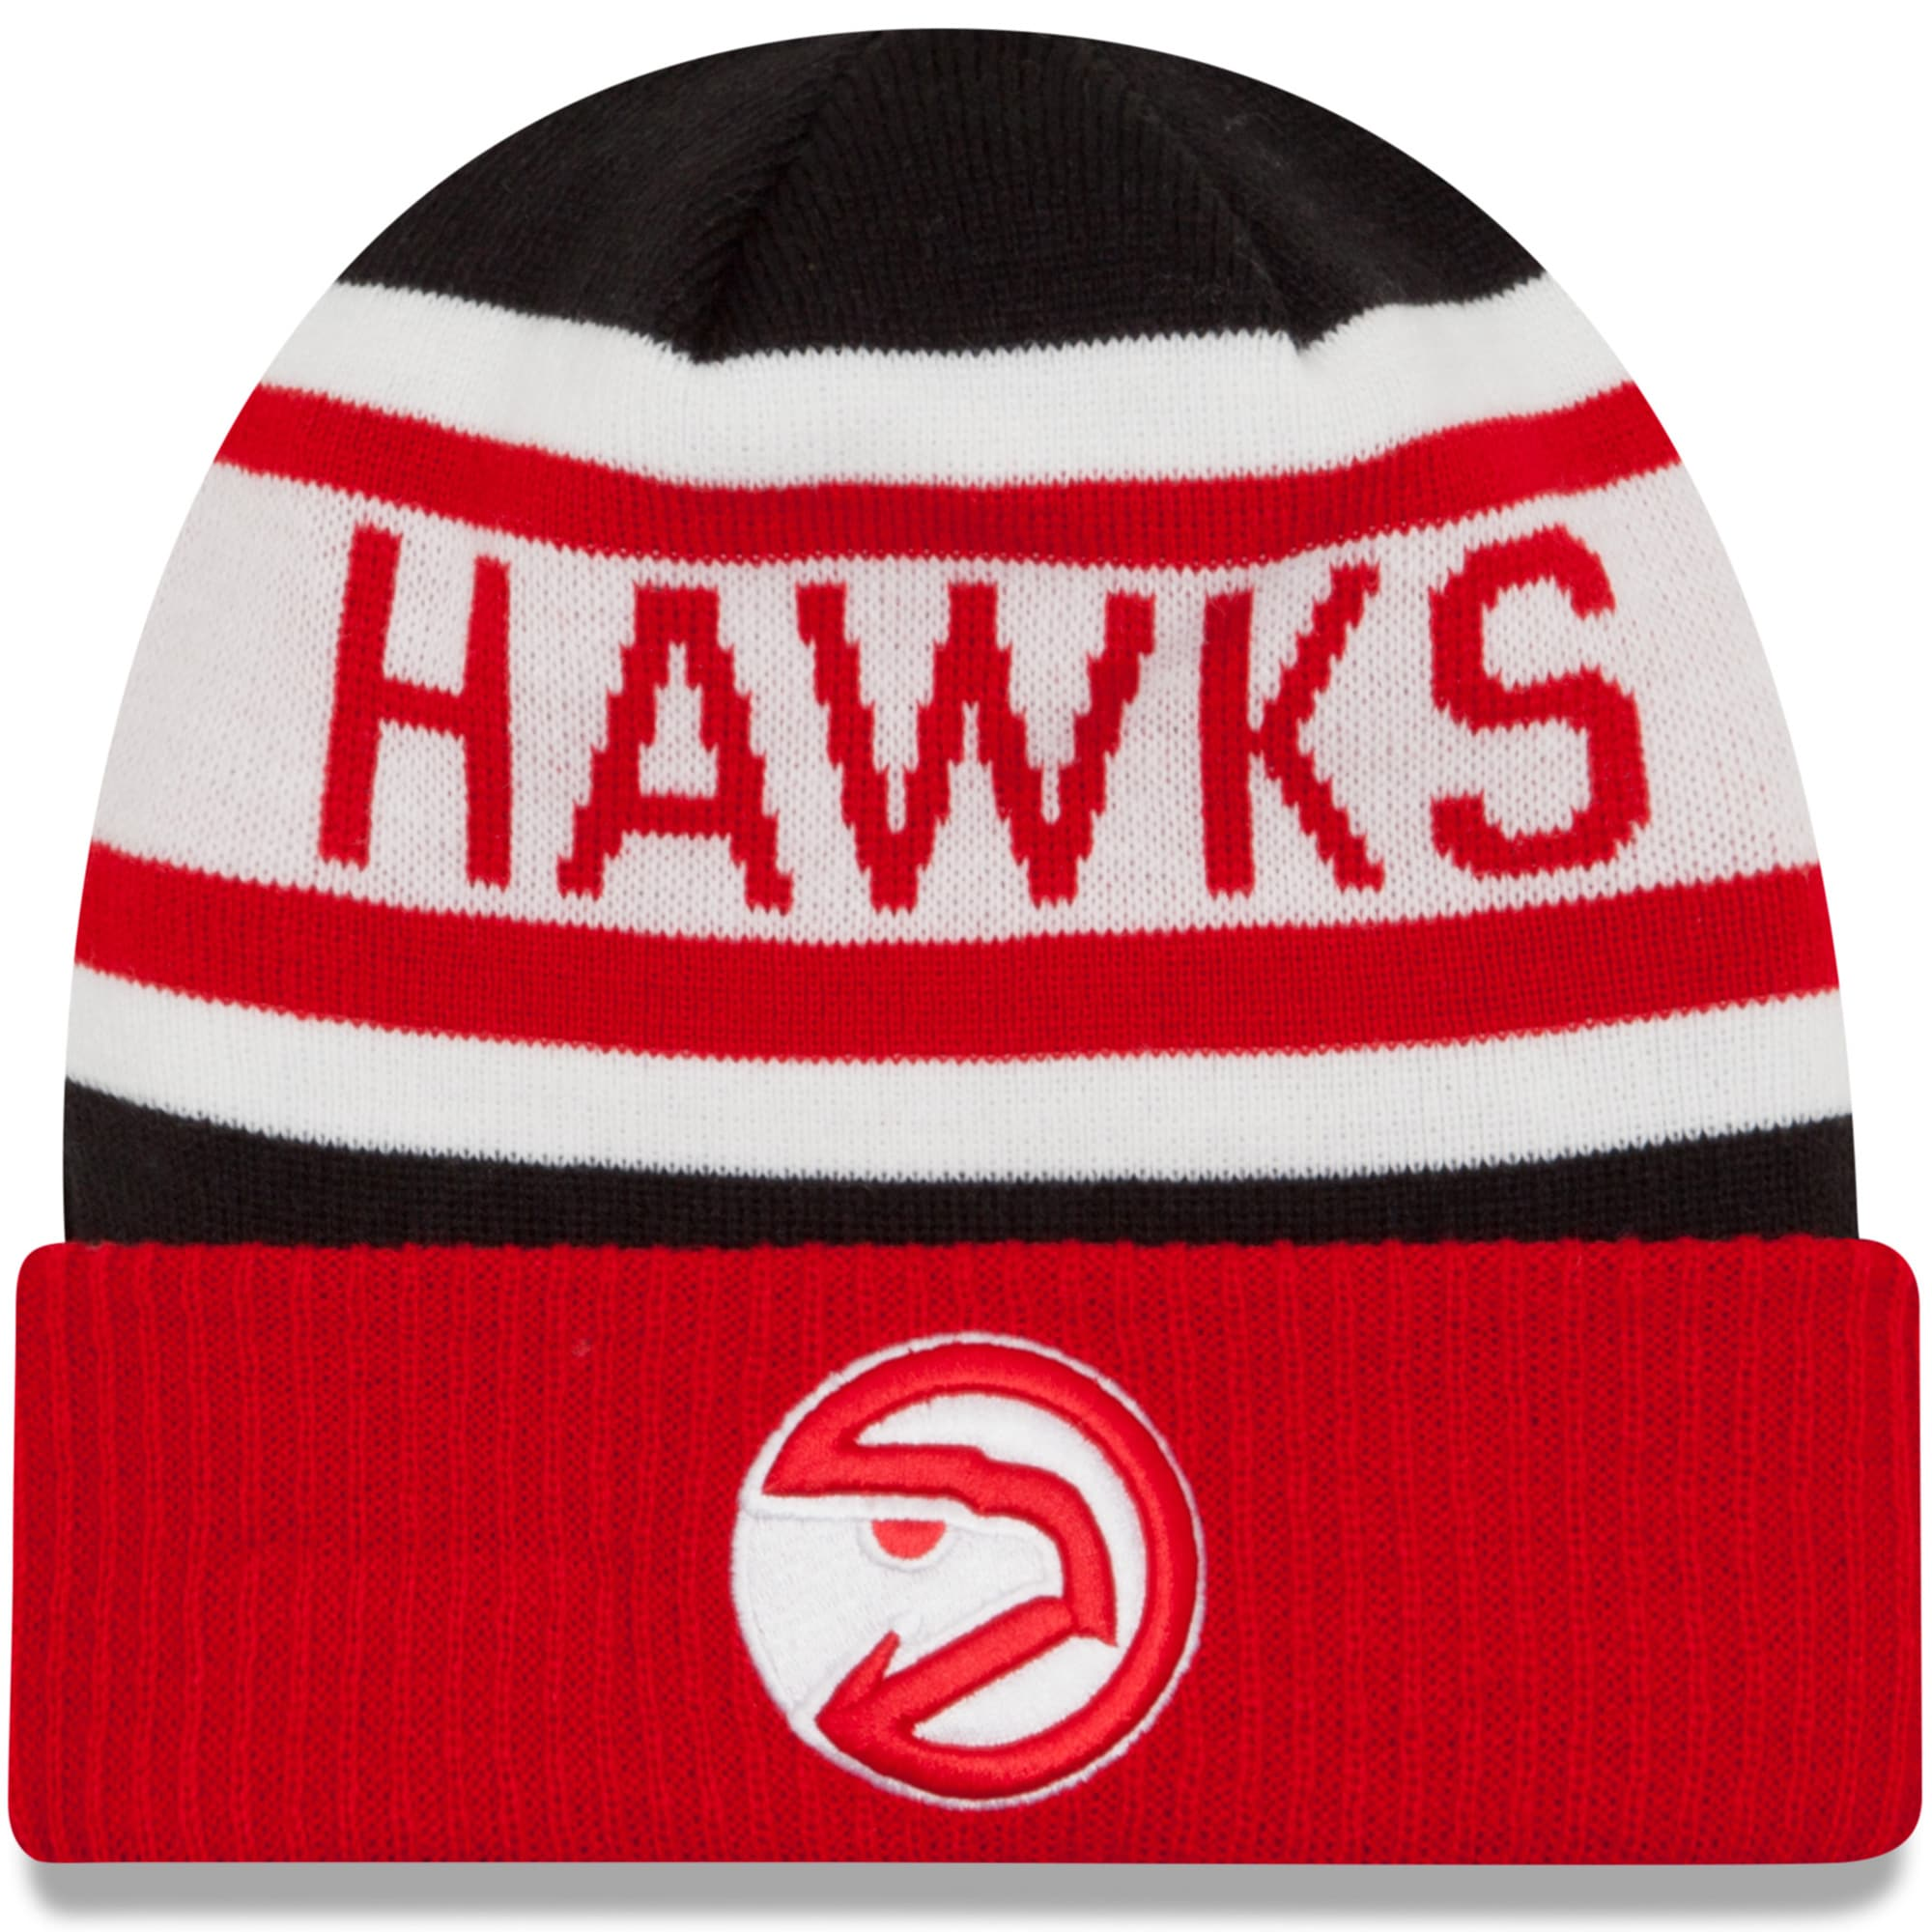 Atlanta Hawks New Era Youth Biggest Fan 2.0 Cuffed Knit Hat - Red